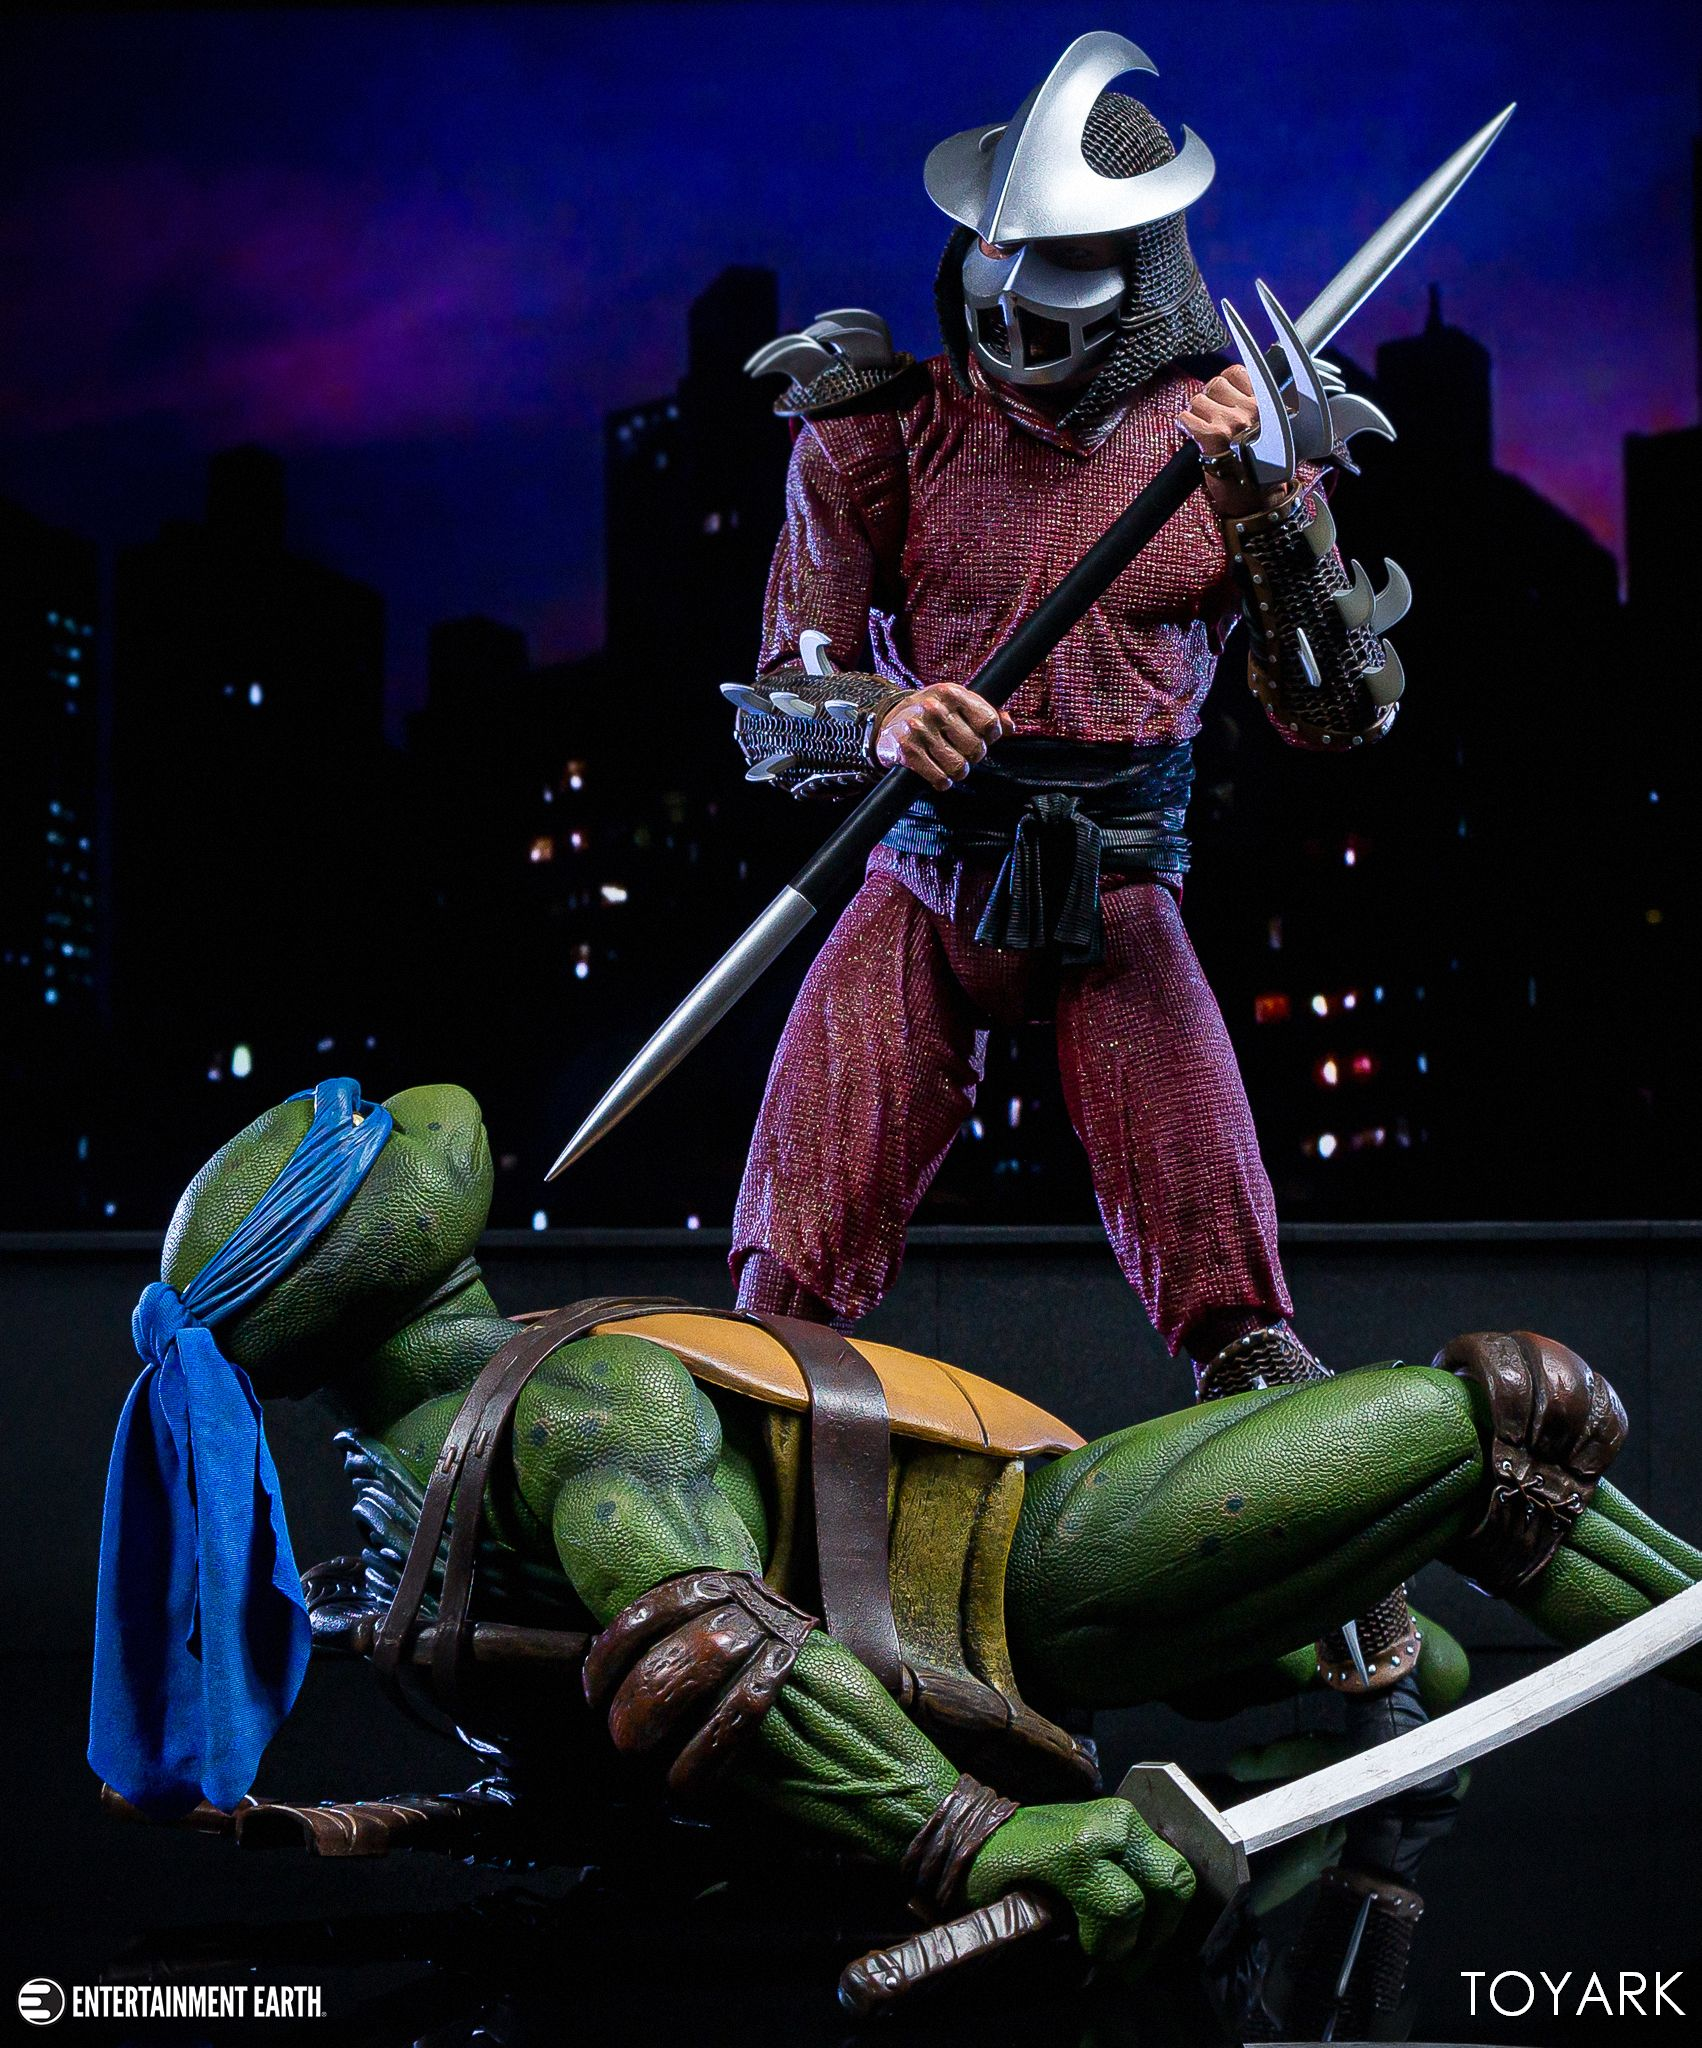 https://news.toyark.com/wp-content/uploads/sites/4/2019/06/NECA-1990-TMNT-Shredder-038.jpg